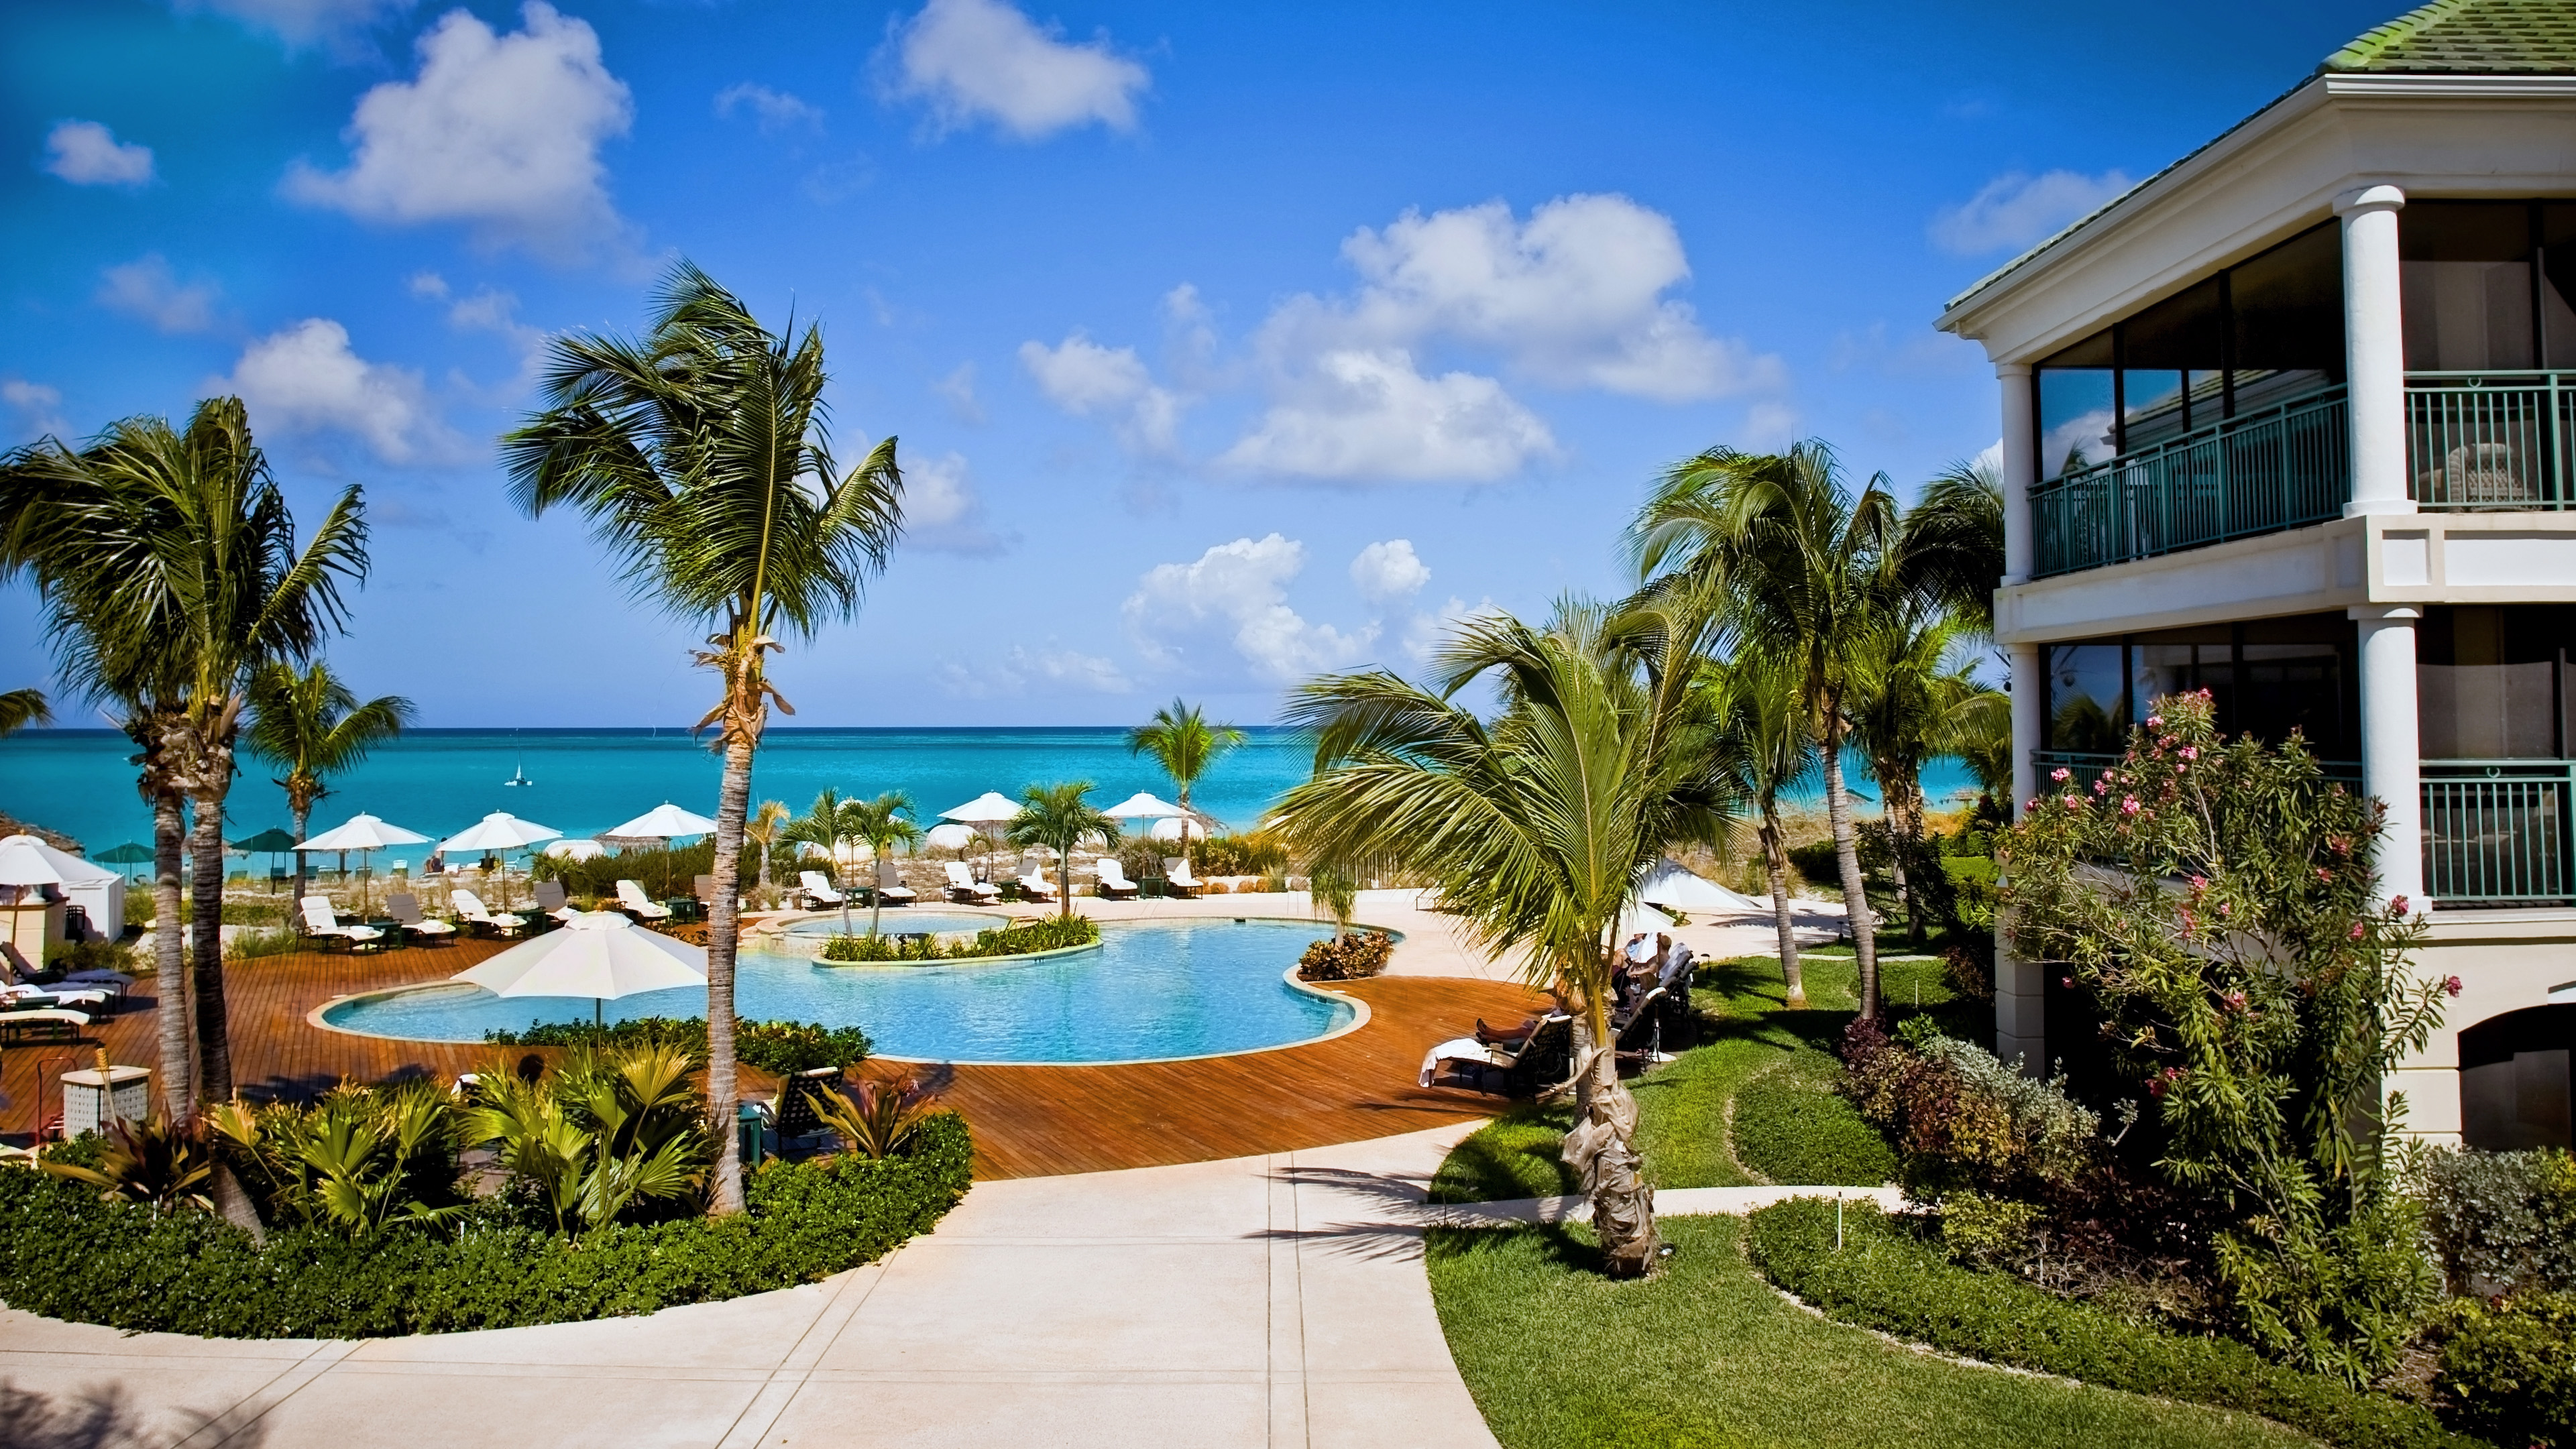 Hotels in providenciales: Sands At Grace Bay